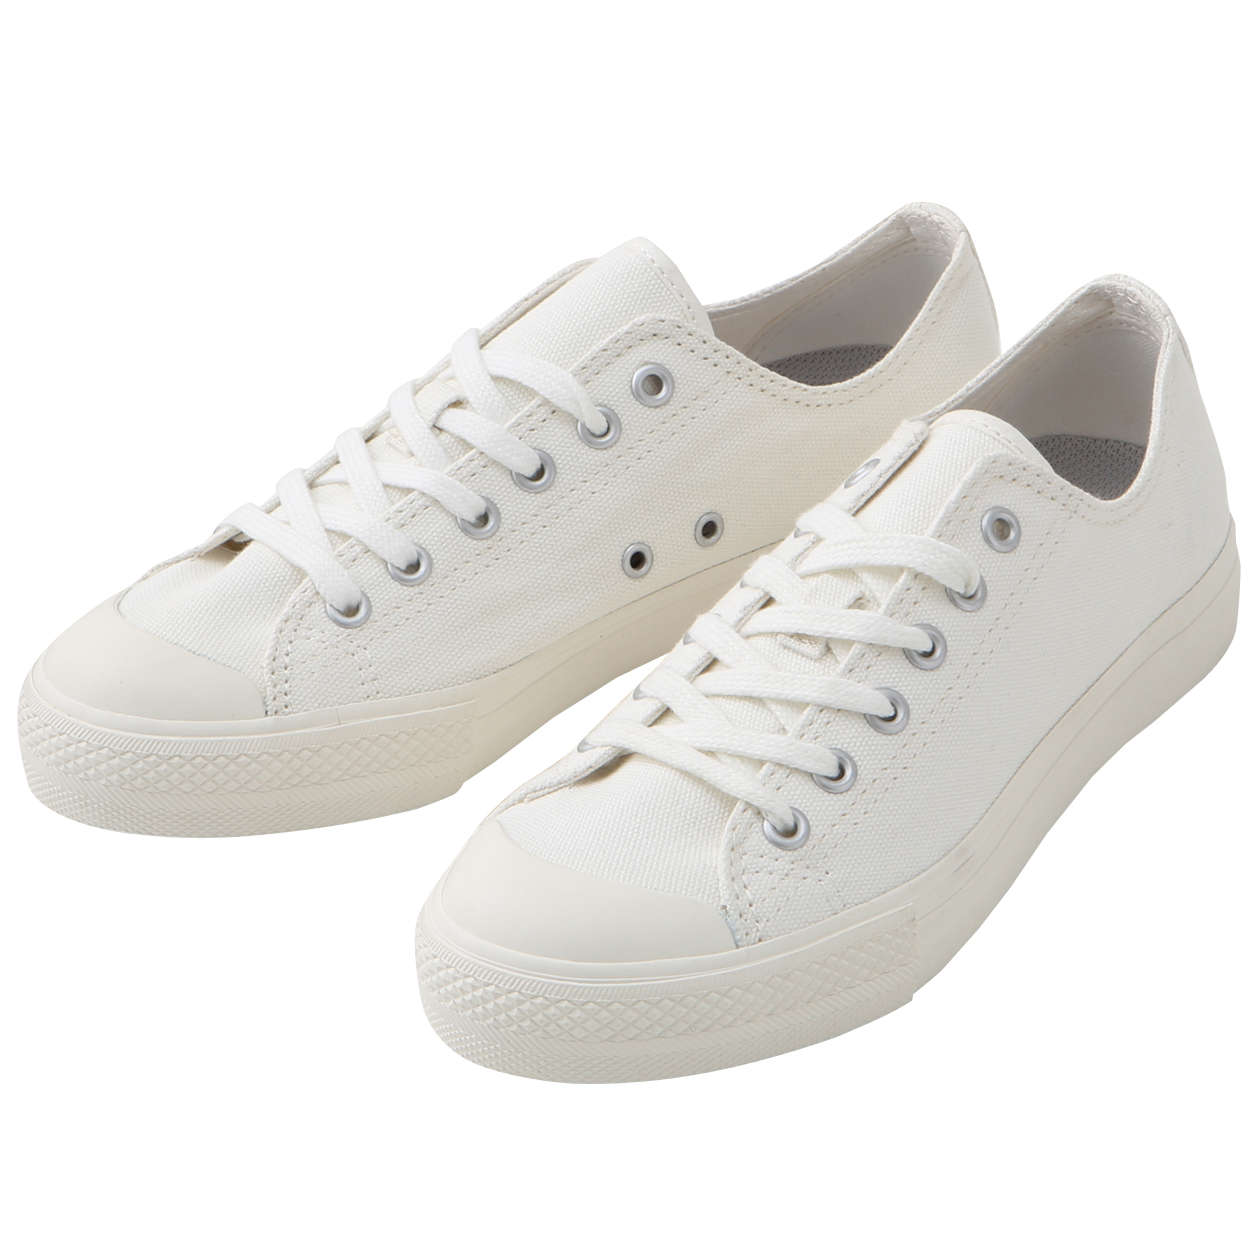 d5eb69035caa These water-repellent sneakers are perfect for your daily commute